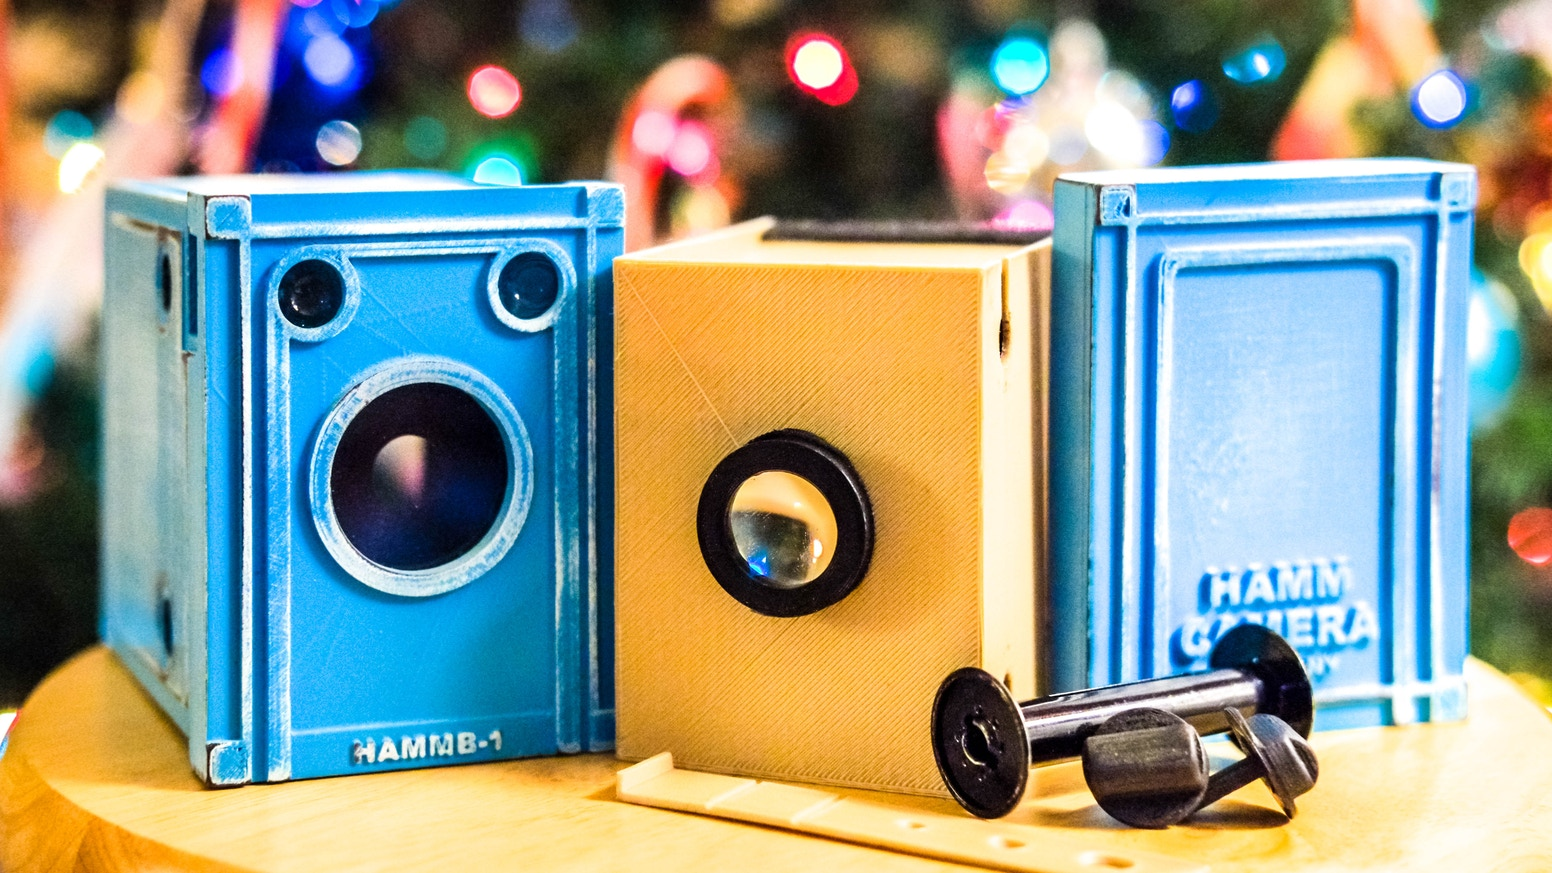 Enjoy Street Portrait Photography Like Never Before With The Nubox 1 Our Interchangeable Lens